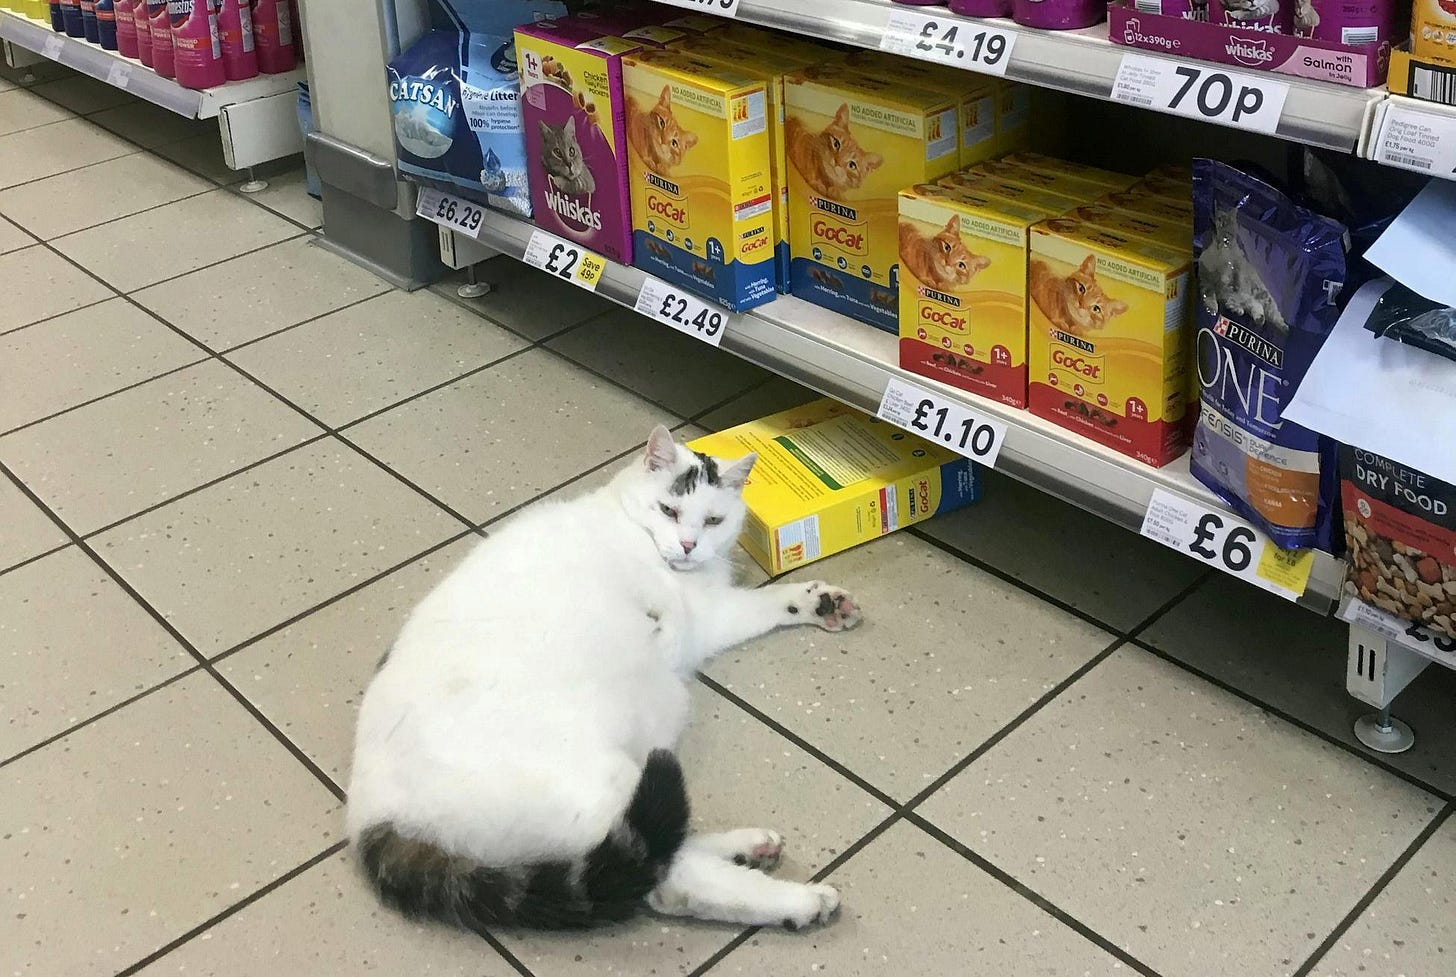 The cheeky cat knocked over a box of treats in Tesco